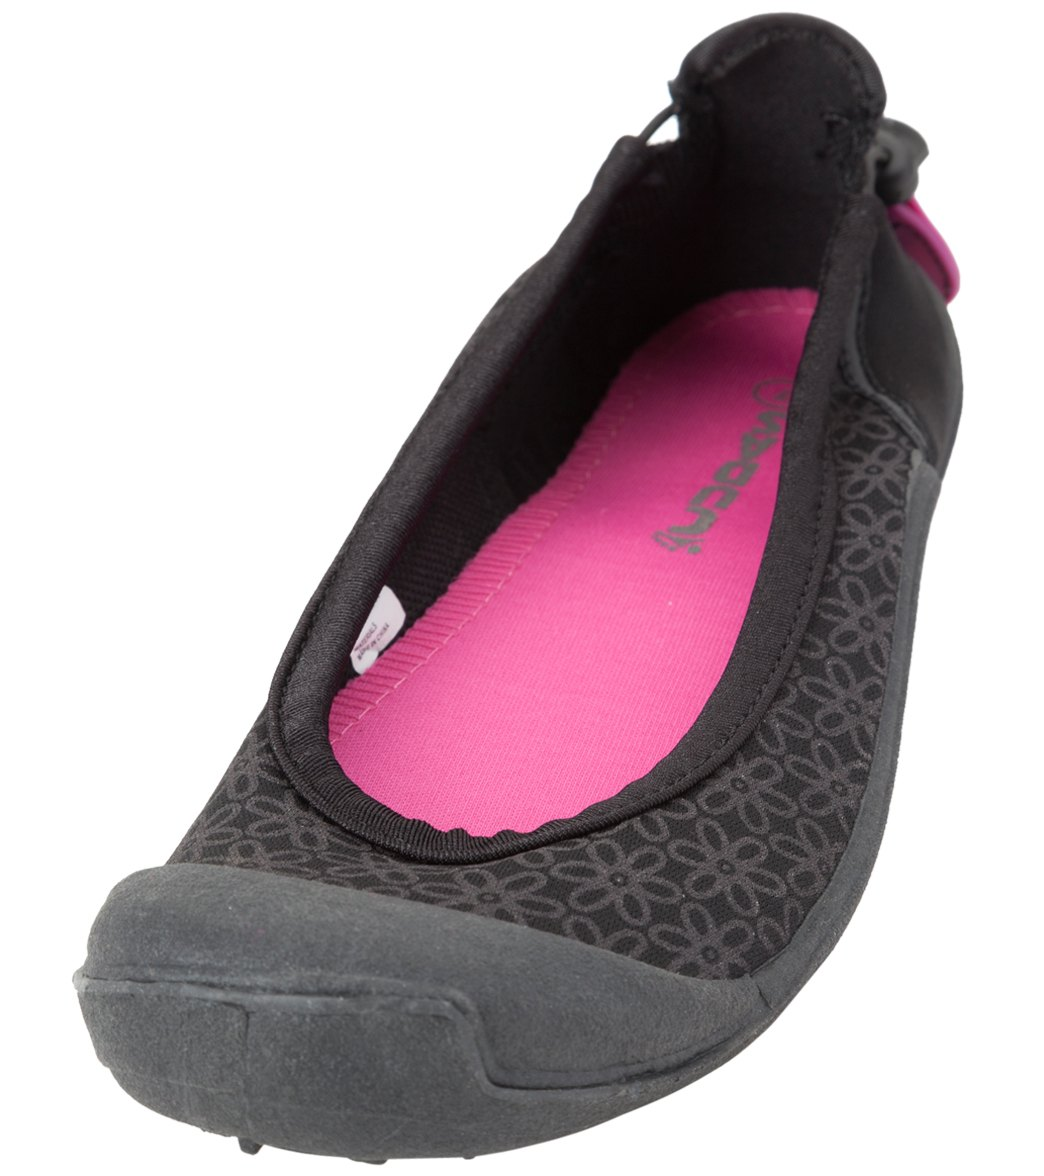 Latest Designs Of Water Shoes For Women